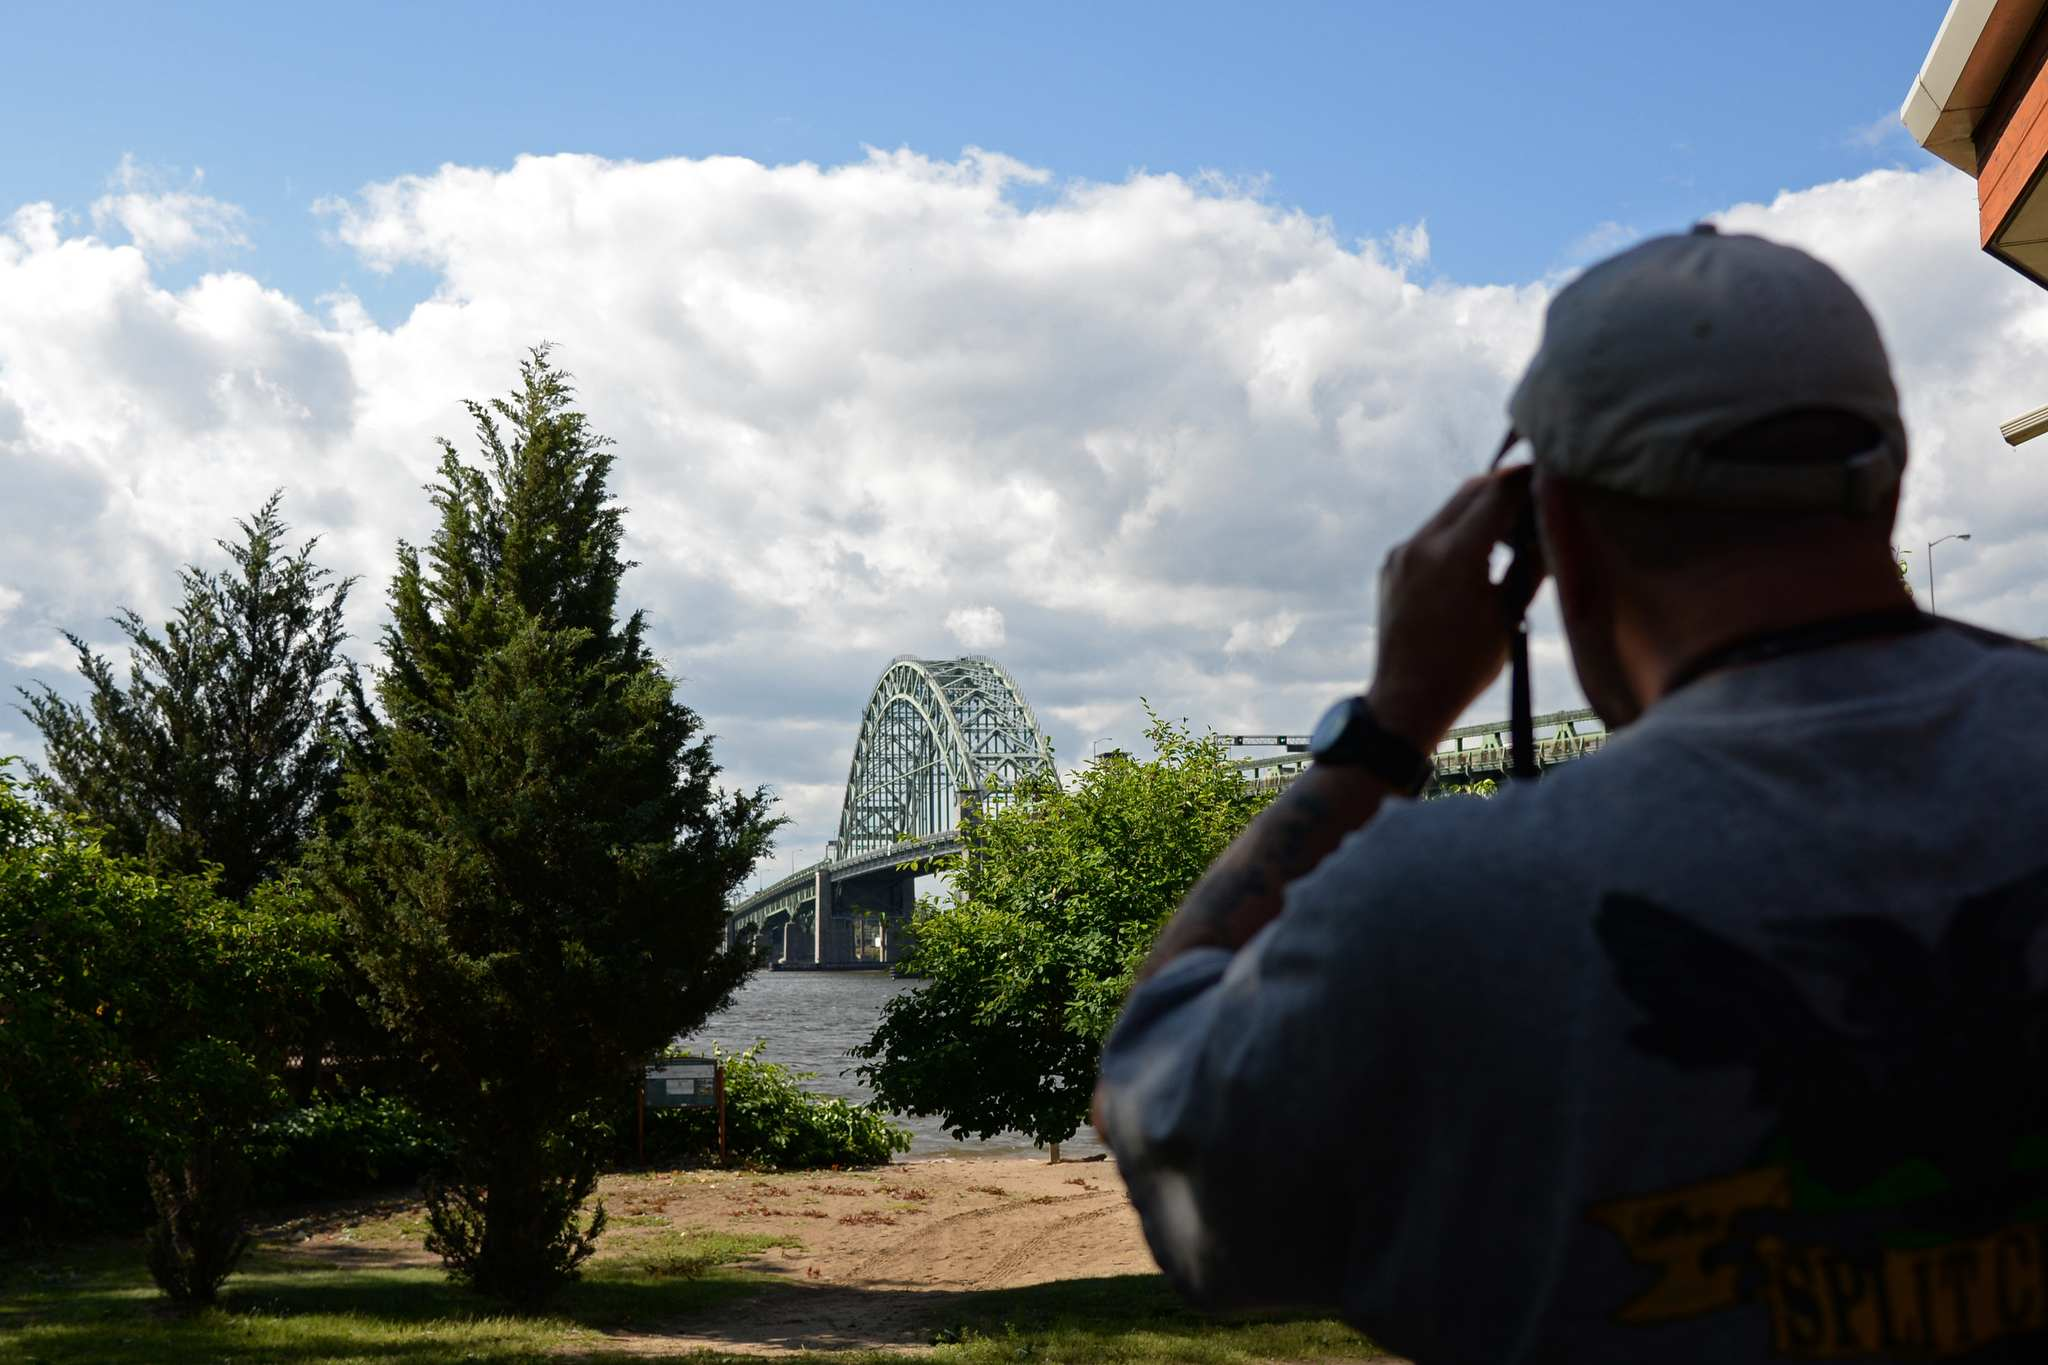 Clyde Croadale, a teaching assistant at Palmyra Cove Nature Park uses his binoculars to look at peregrine falcons nesting on the top of the Talcony Palmyra Bridge.